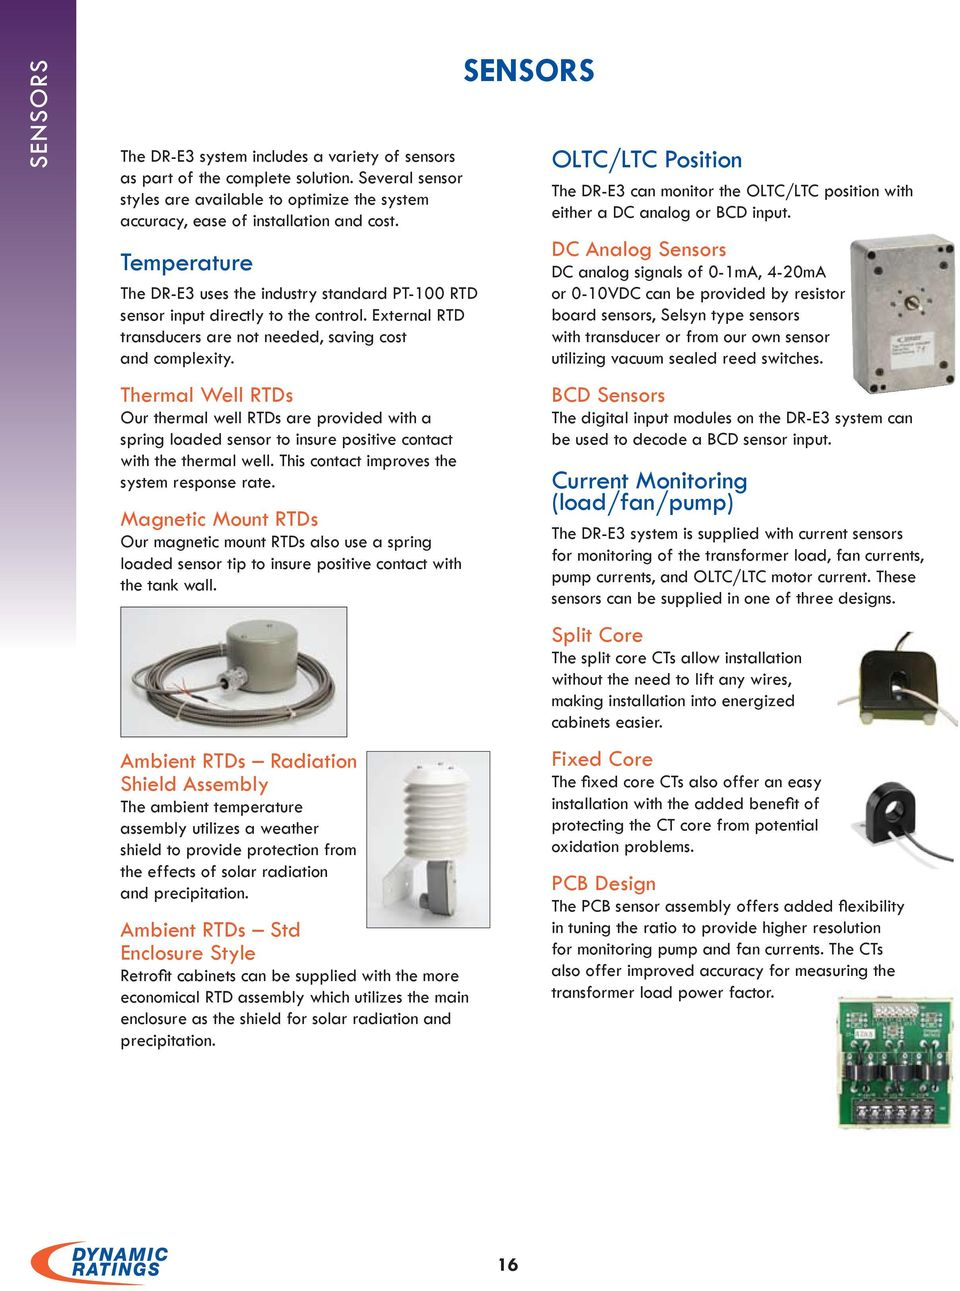 Dr E3 Features Benefits E Series Technical Overview Flexible Current Monitoring Relay Gic Thermal Well Rtds Our Are Provided With A Spring Loaded Sensor To Insure